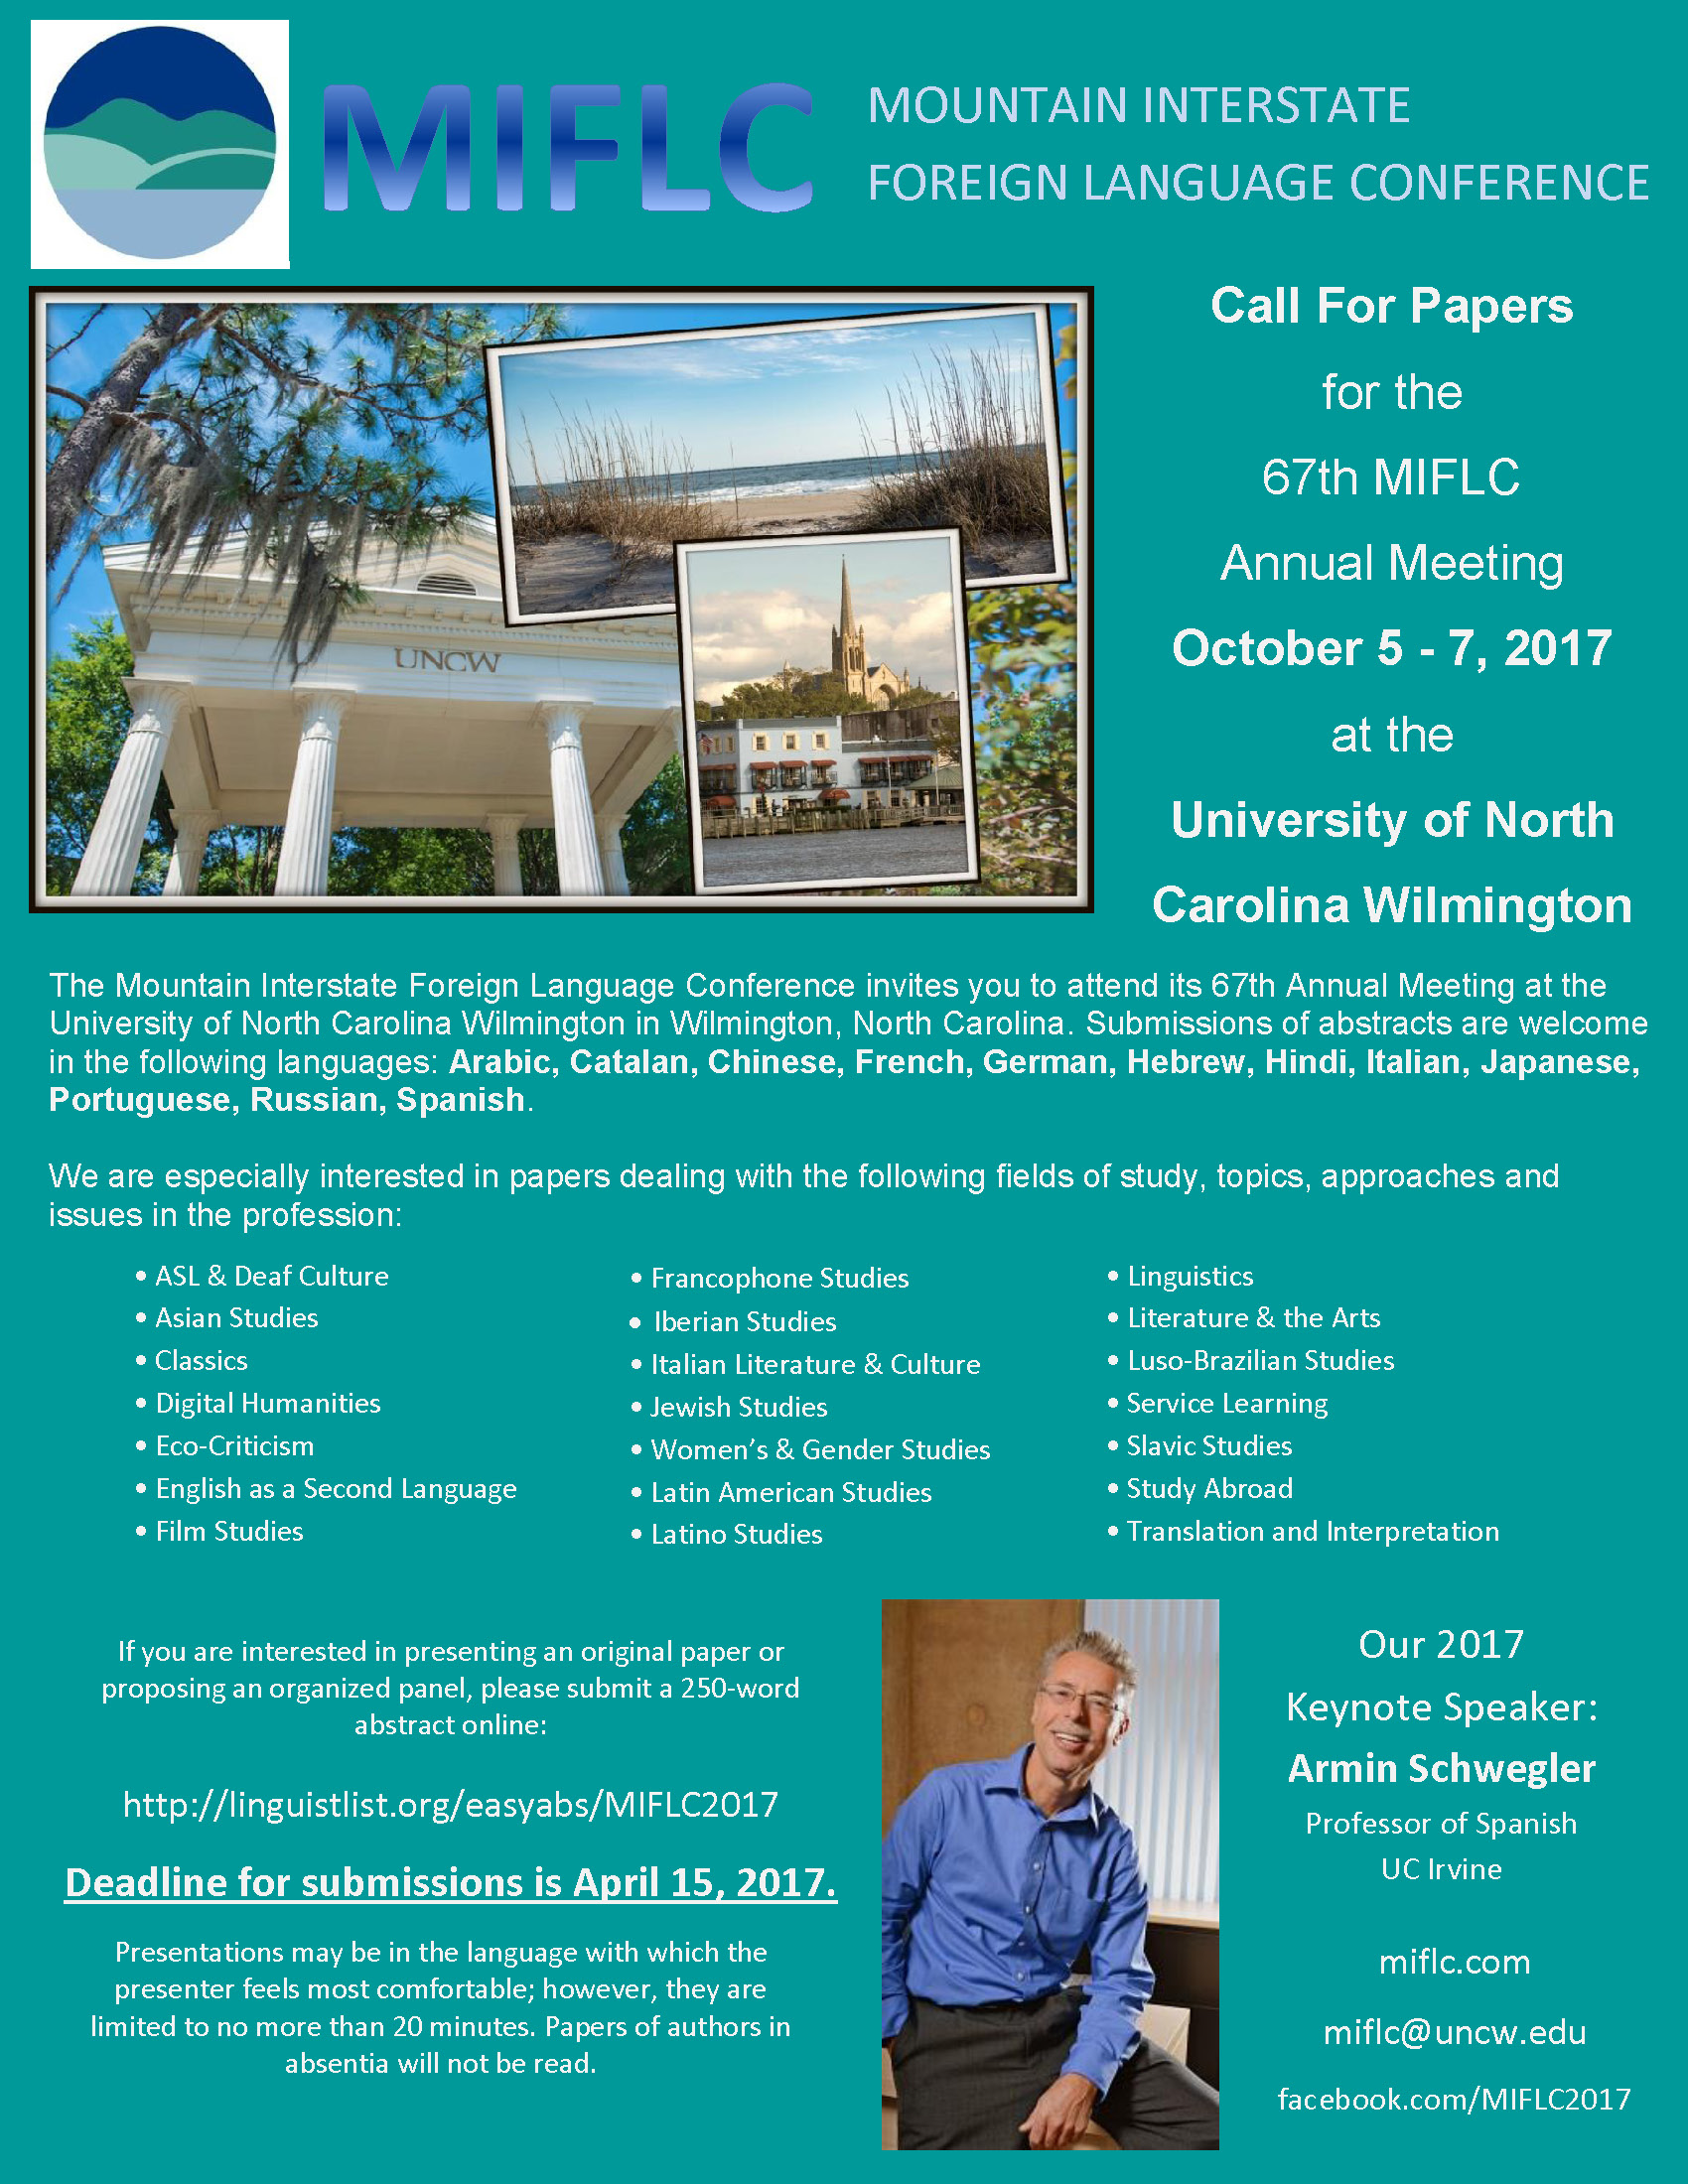 Call for Papers: MIFLC: UNCW